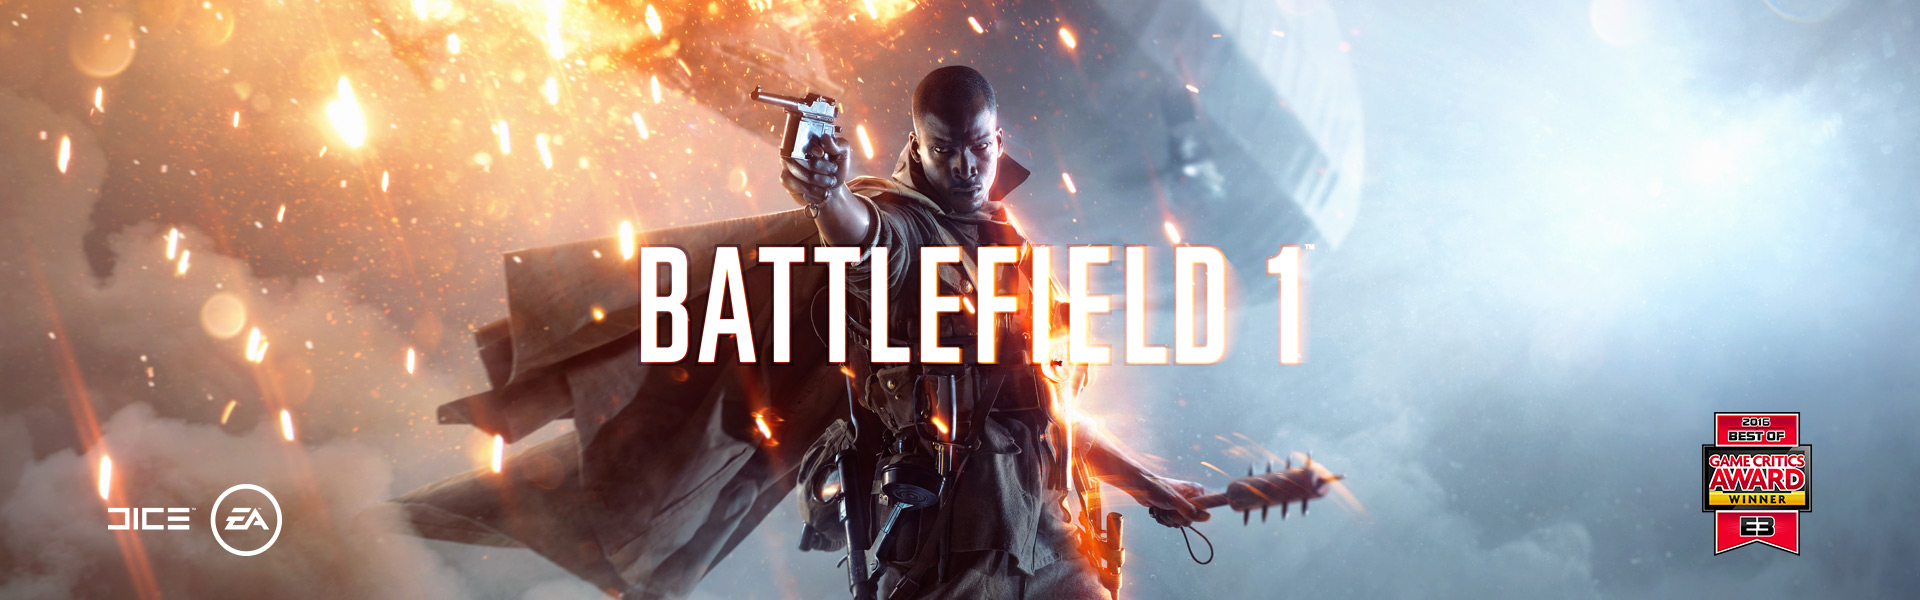 Battlefield 1 Character facing forward while pointing gun, holding grenade, and a zeppelin on fire in the background